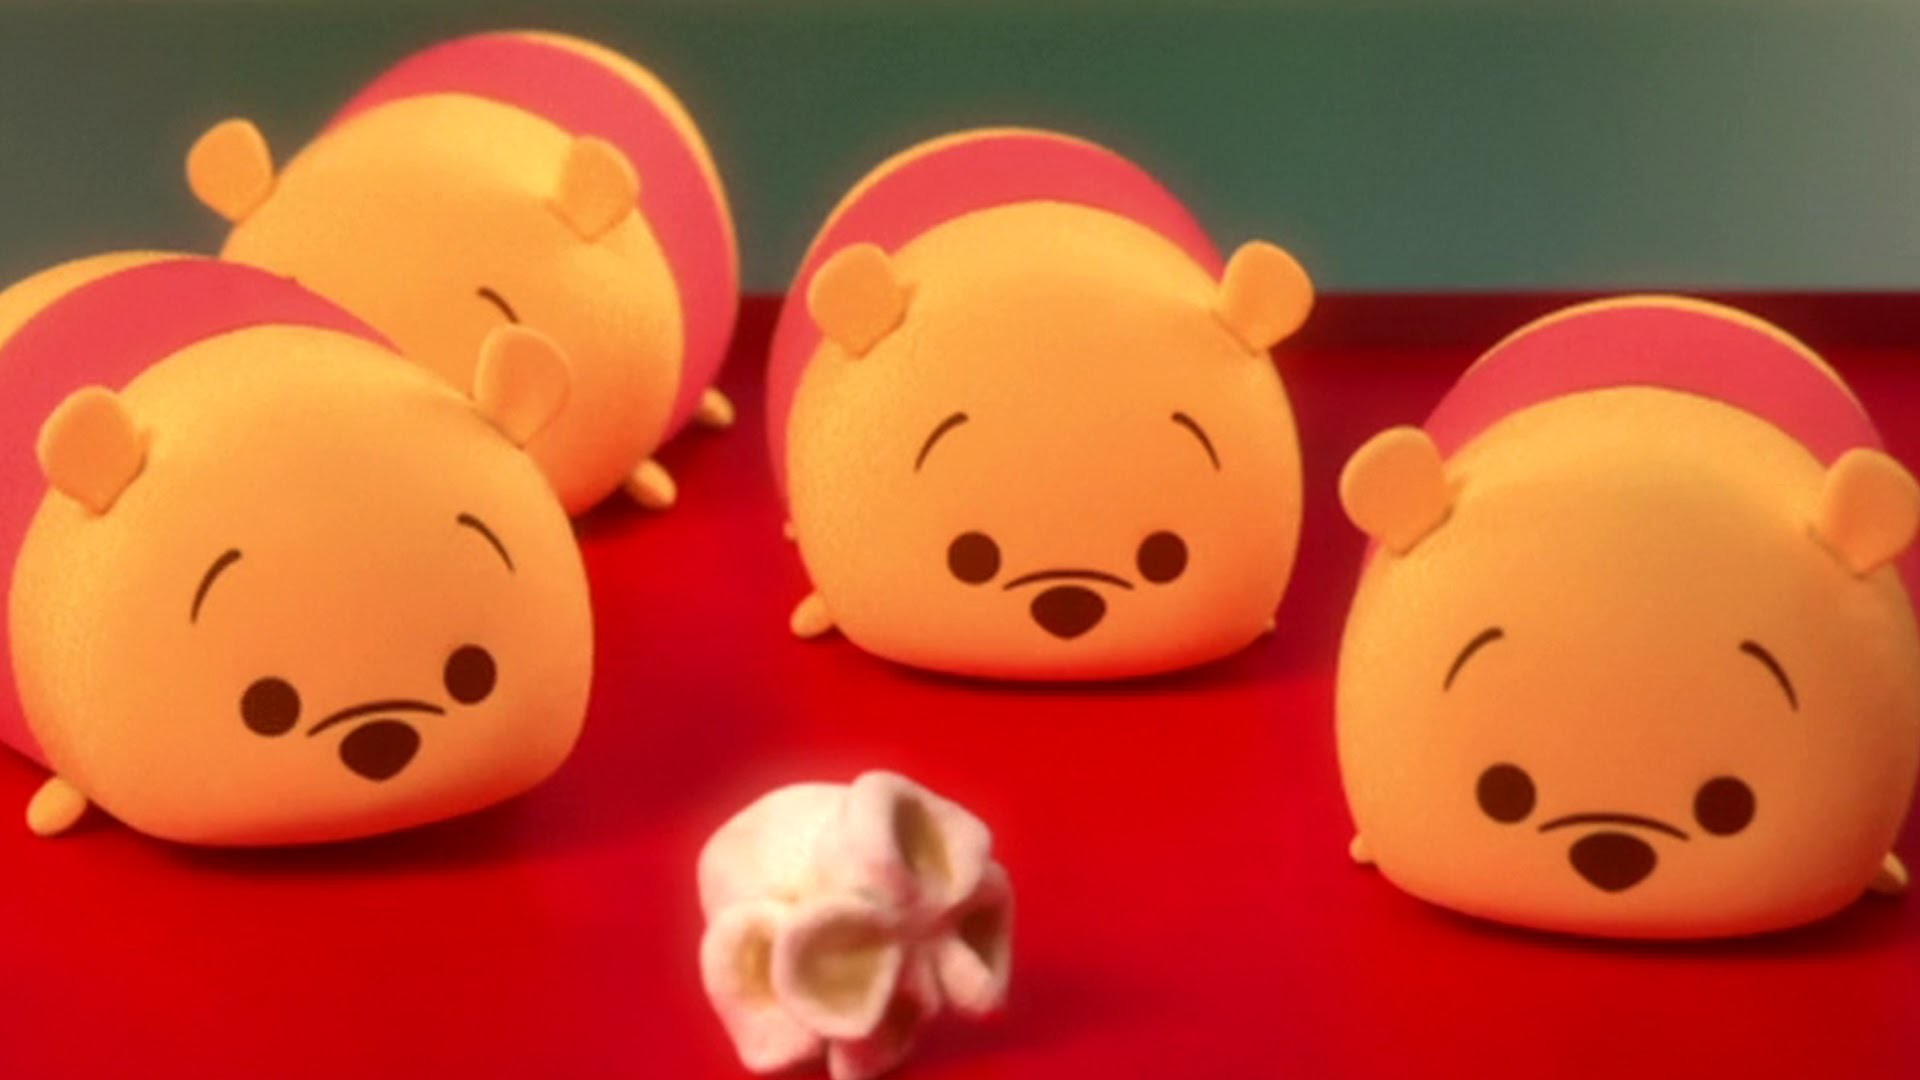 1920x1080 Hunny Popcorn | A Tsum Tsum short | Disney This is actually really cute  #animation